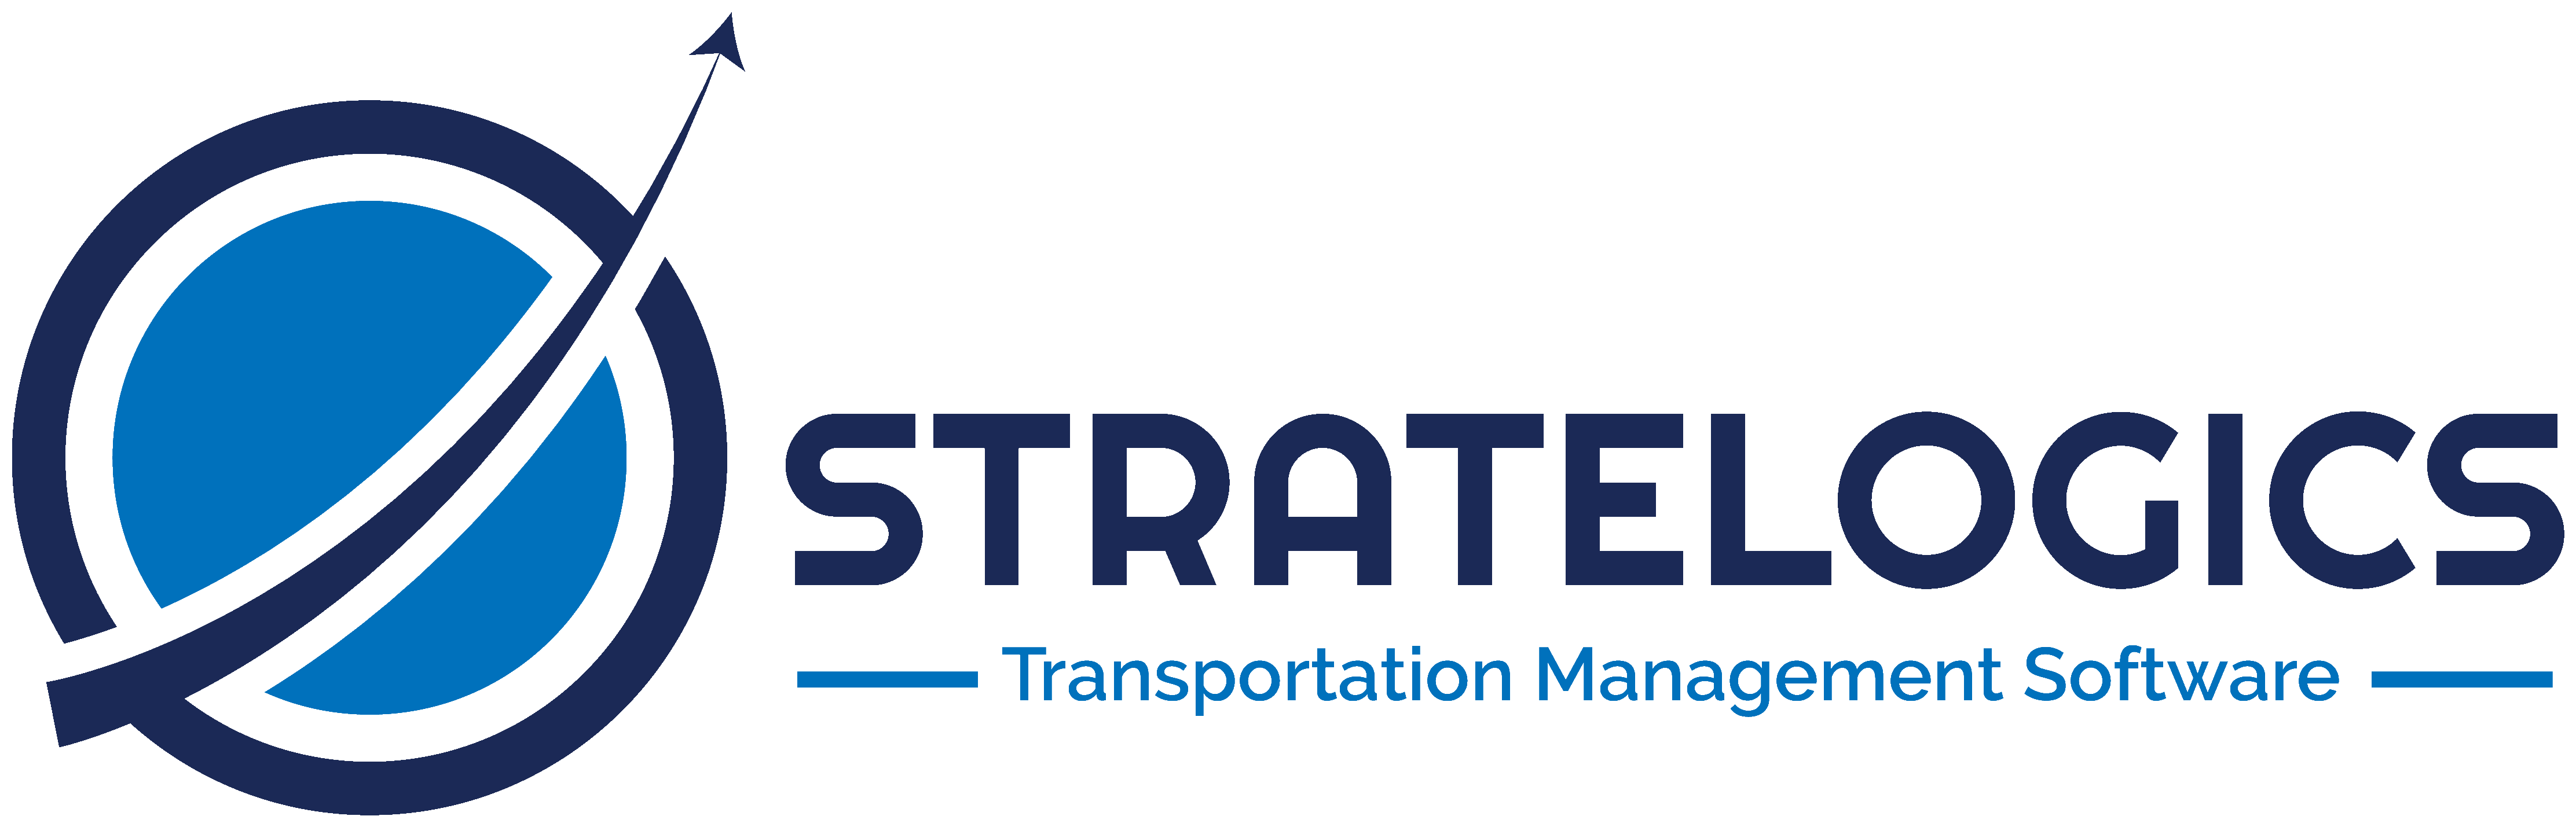 Stratelogics. Freight Transportation Management Software.